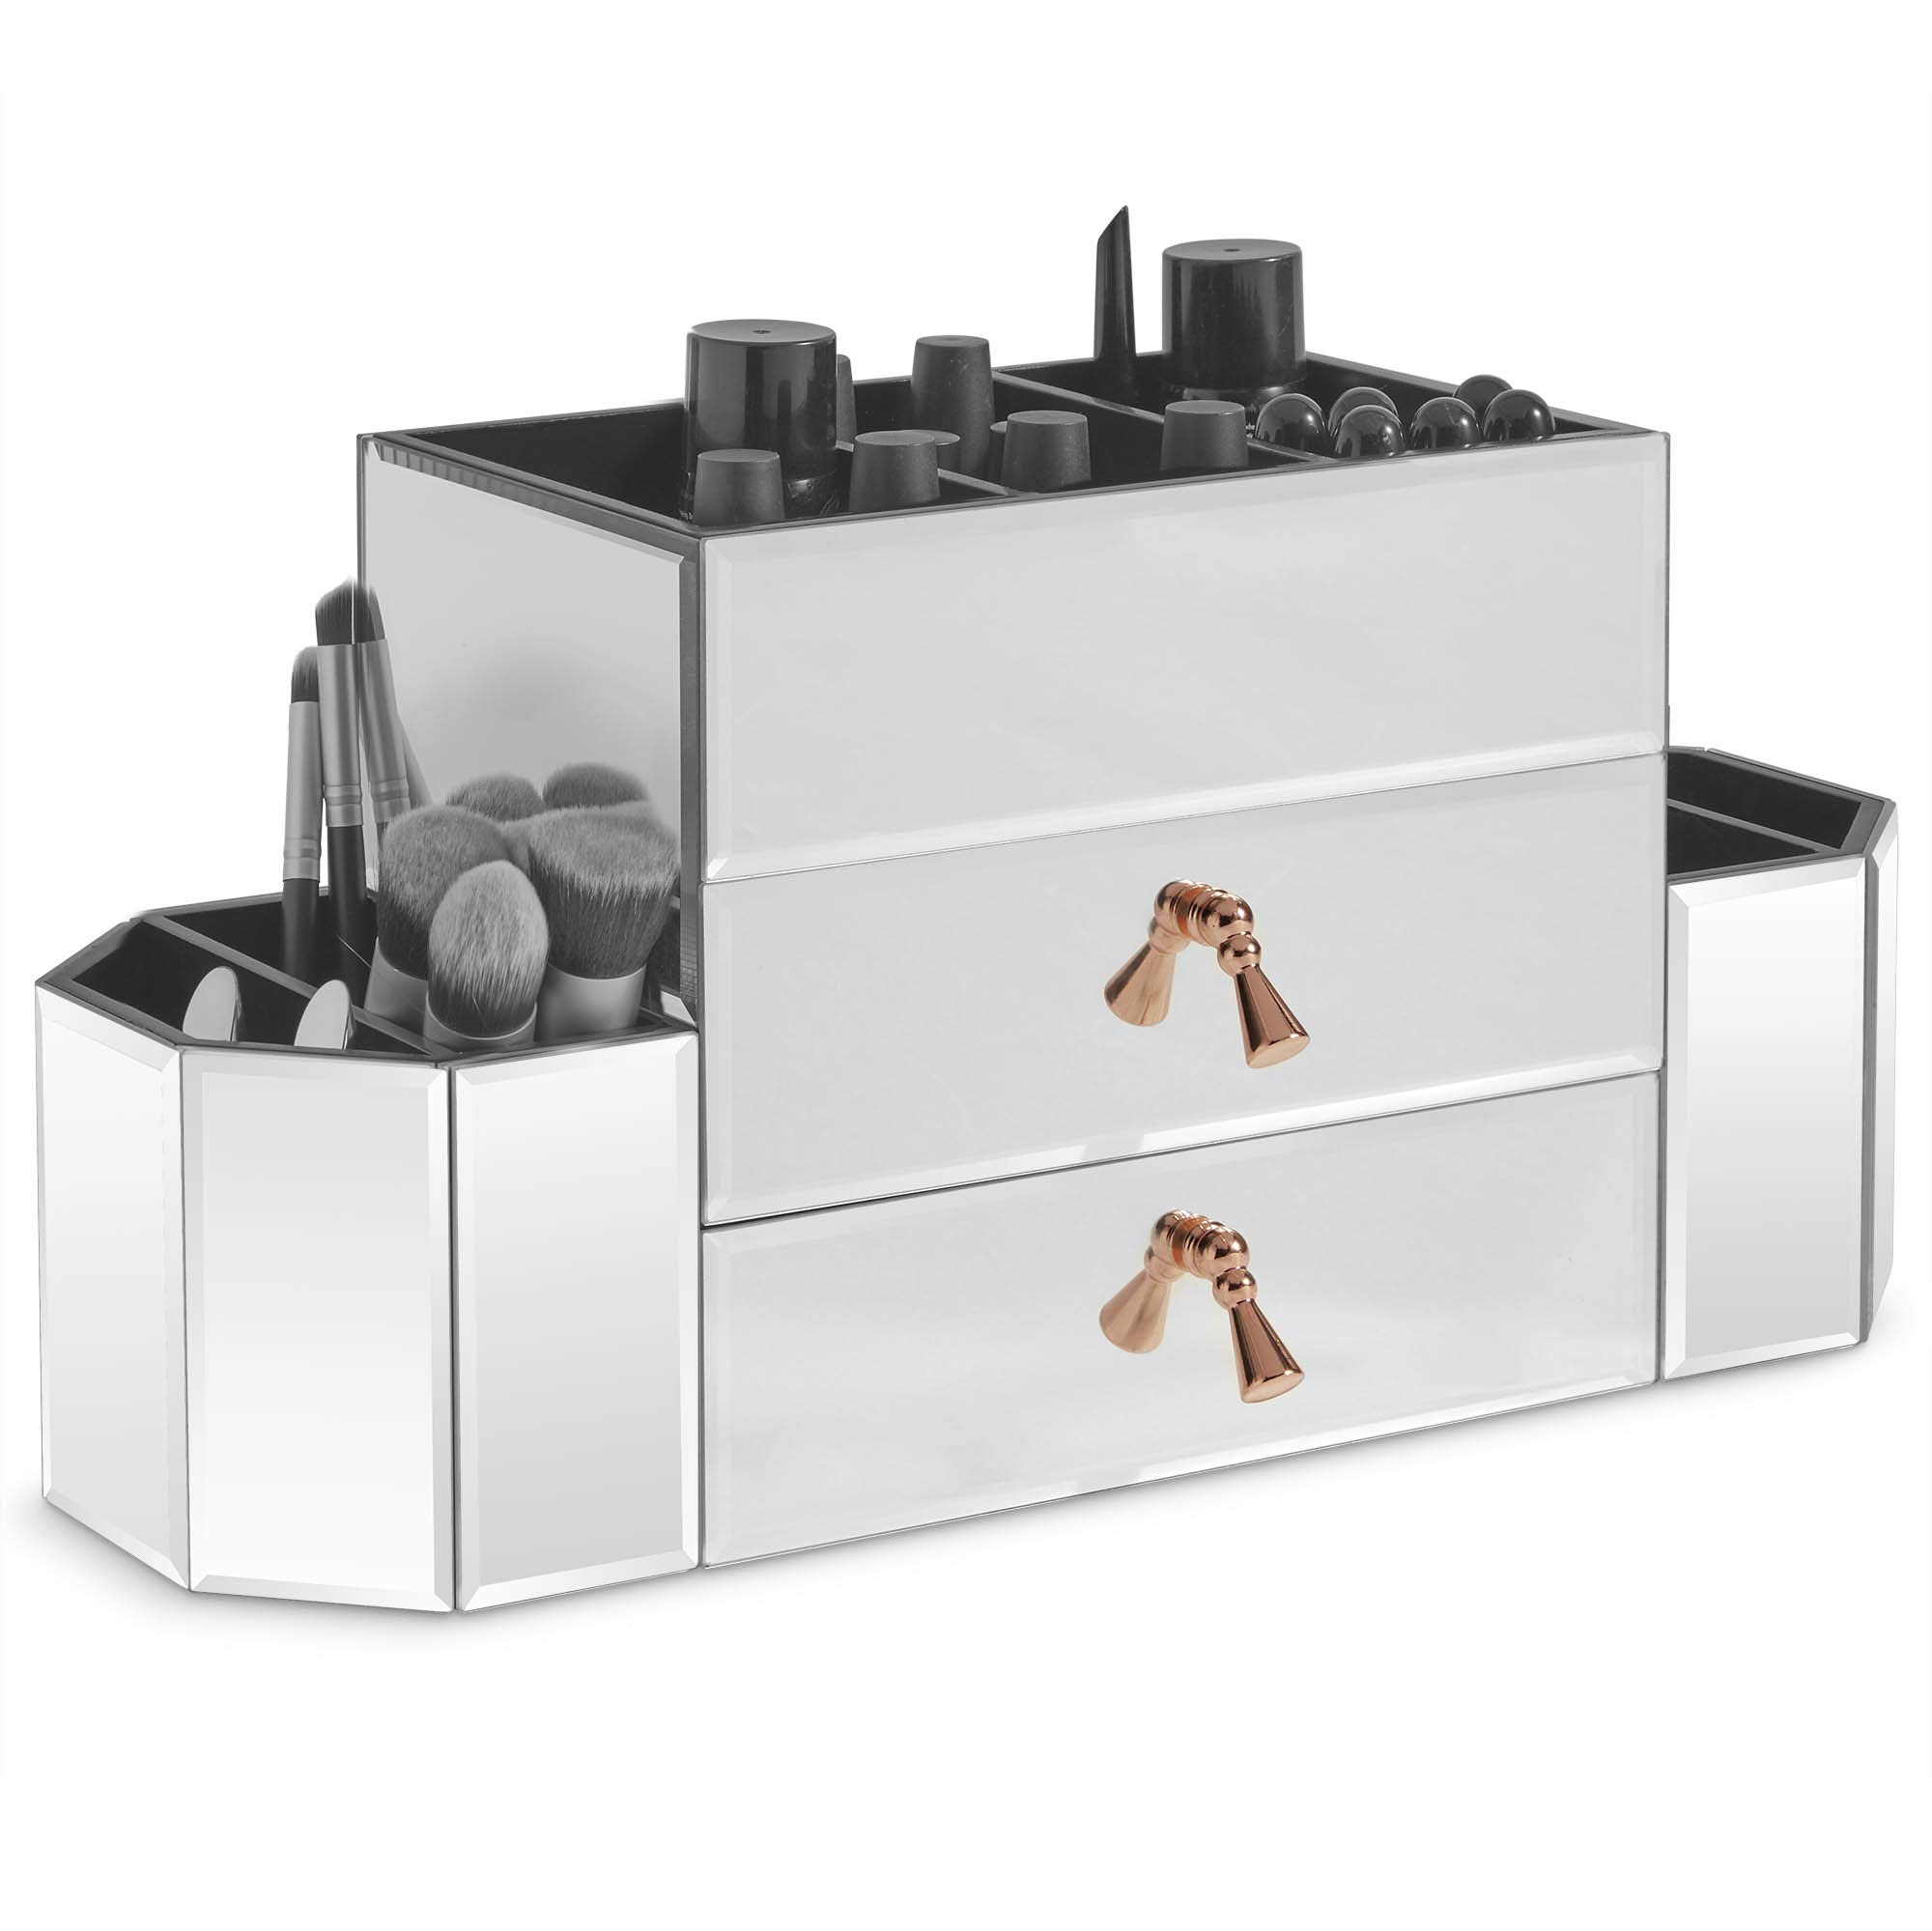 CDM product Beautify Large Mirrored Glass Jewelry Box and Cosmetic Makeup Organizer with 2 Drawers and 7 Sections, Silver Desk Tidy with Rose Gold Handles big image